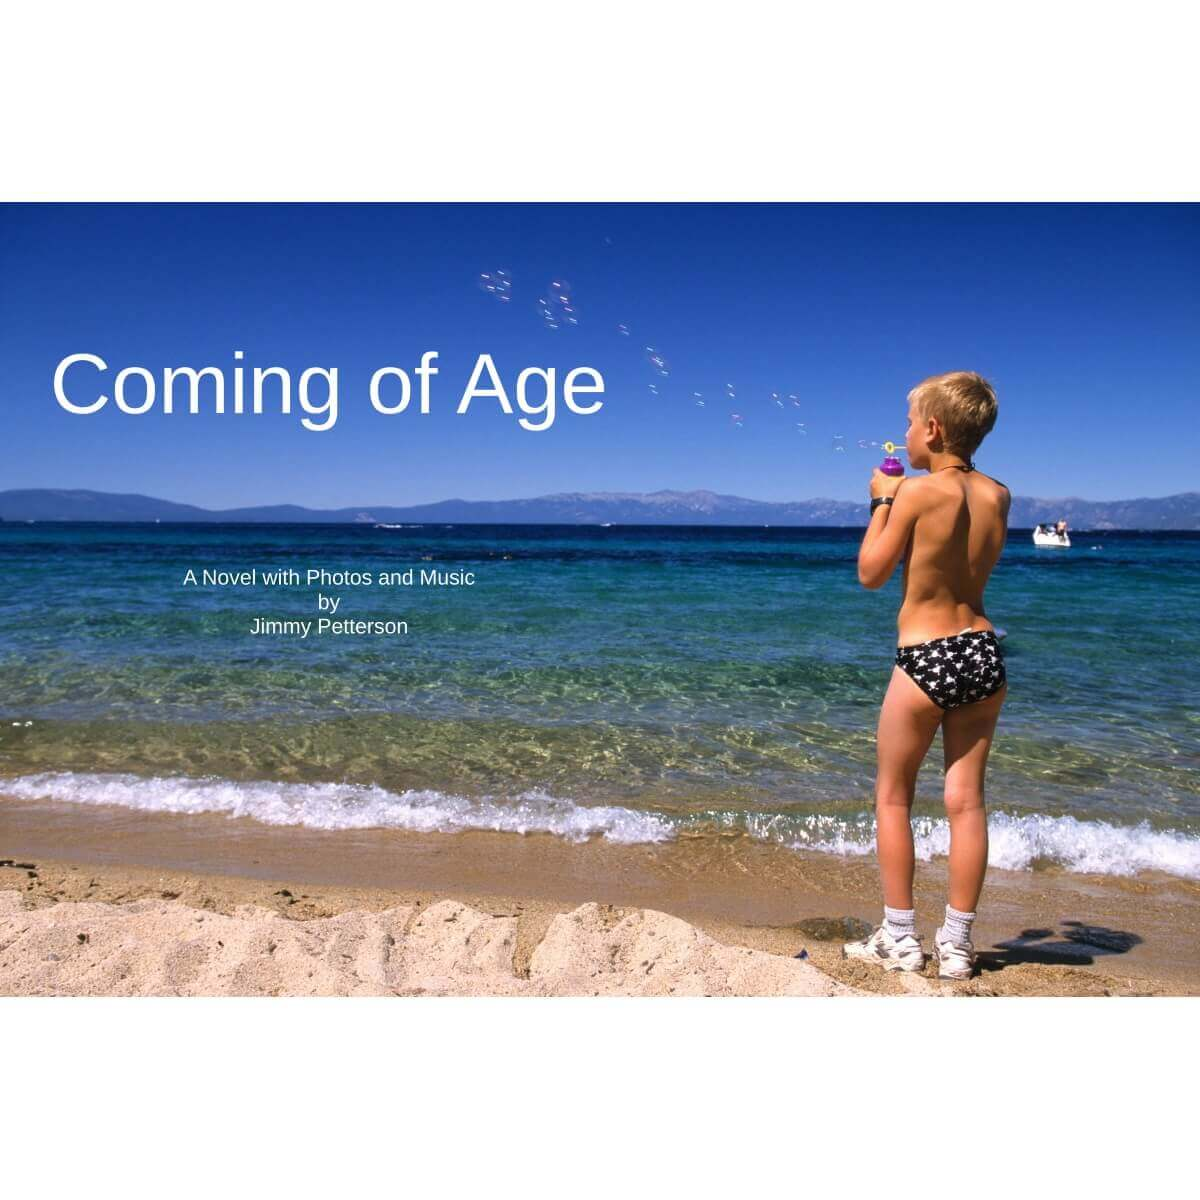 Coming of Age - A Novel with Photos and Music by Jimmy Petterson